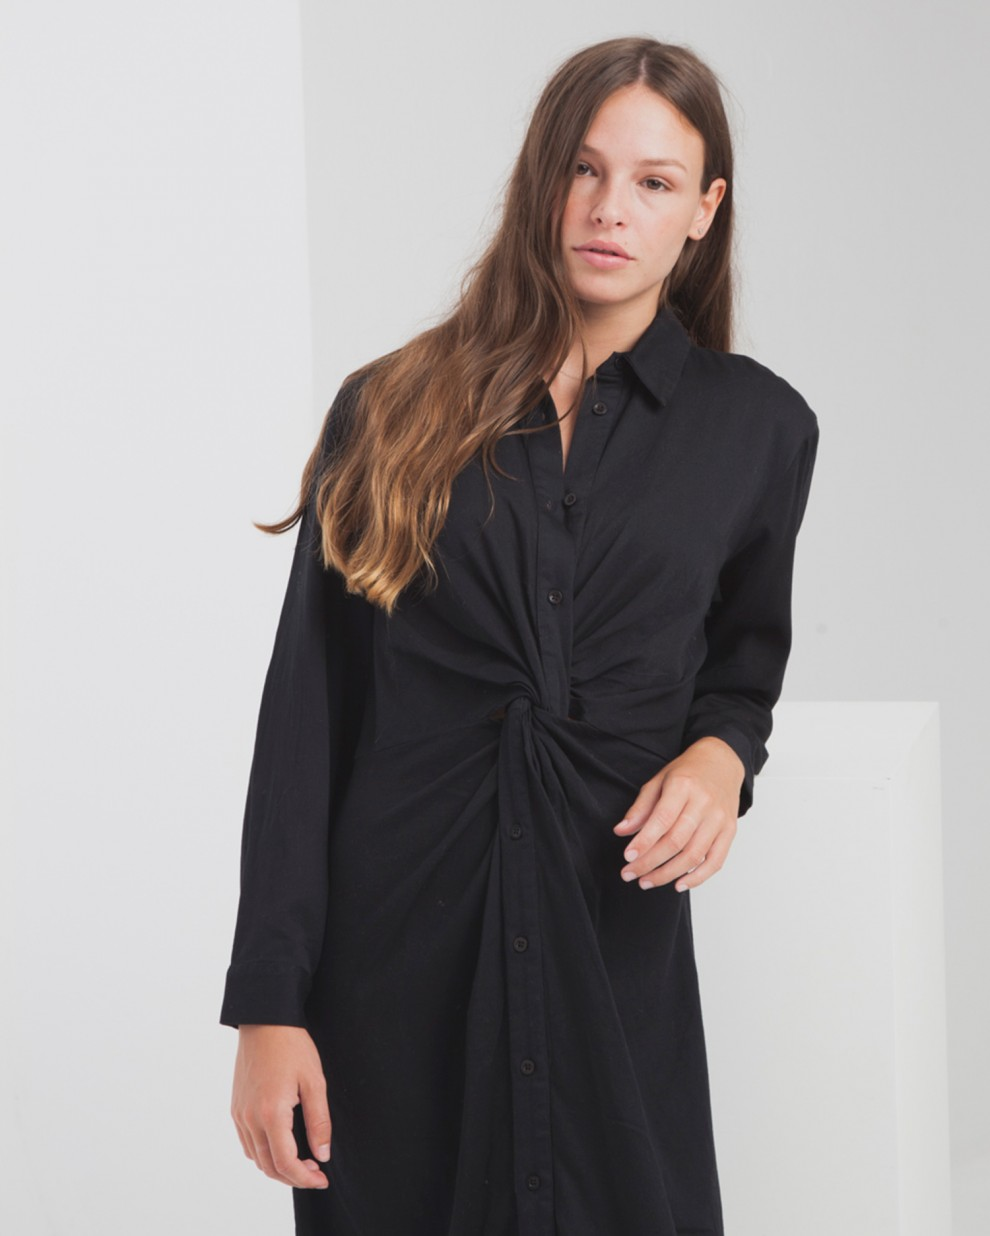 Phantom Shirt Dress